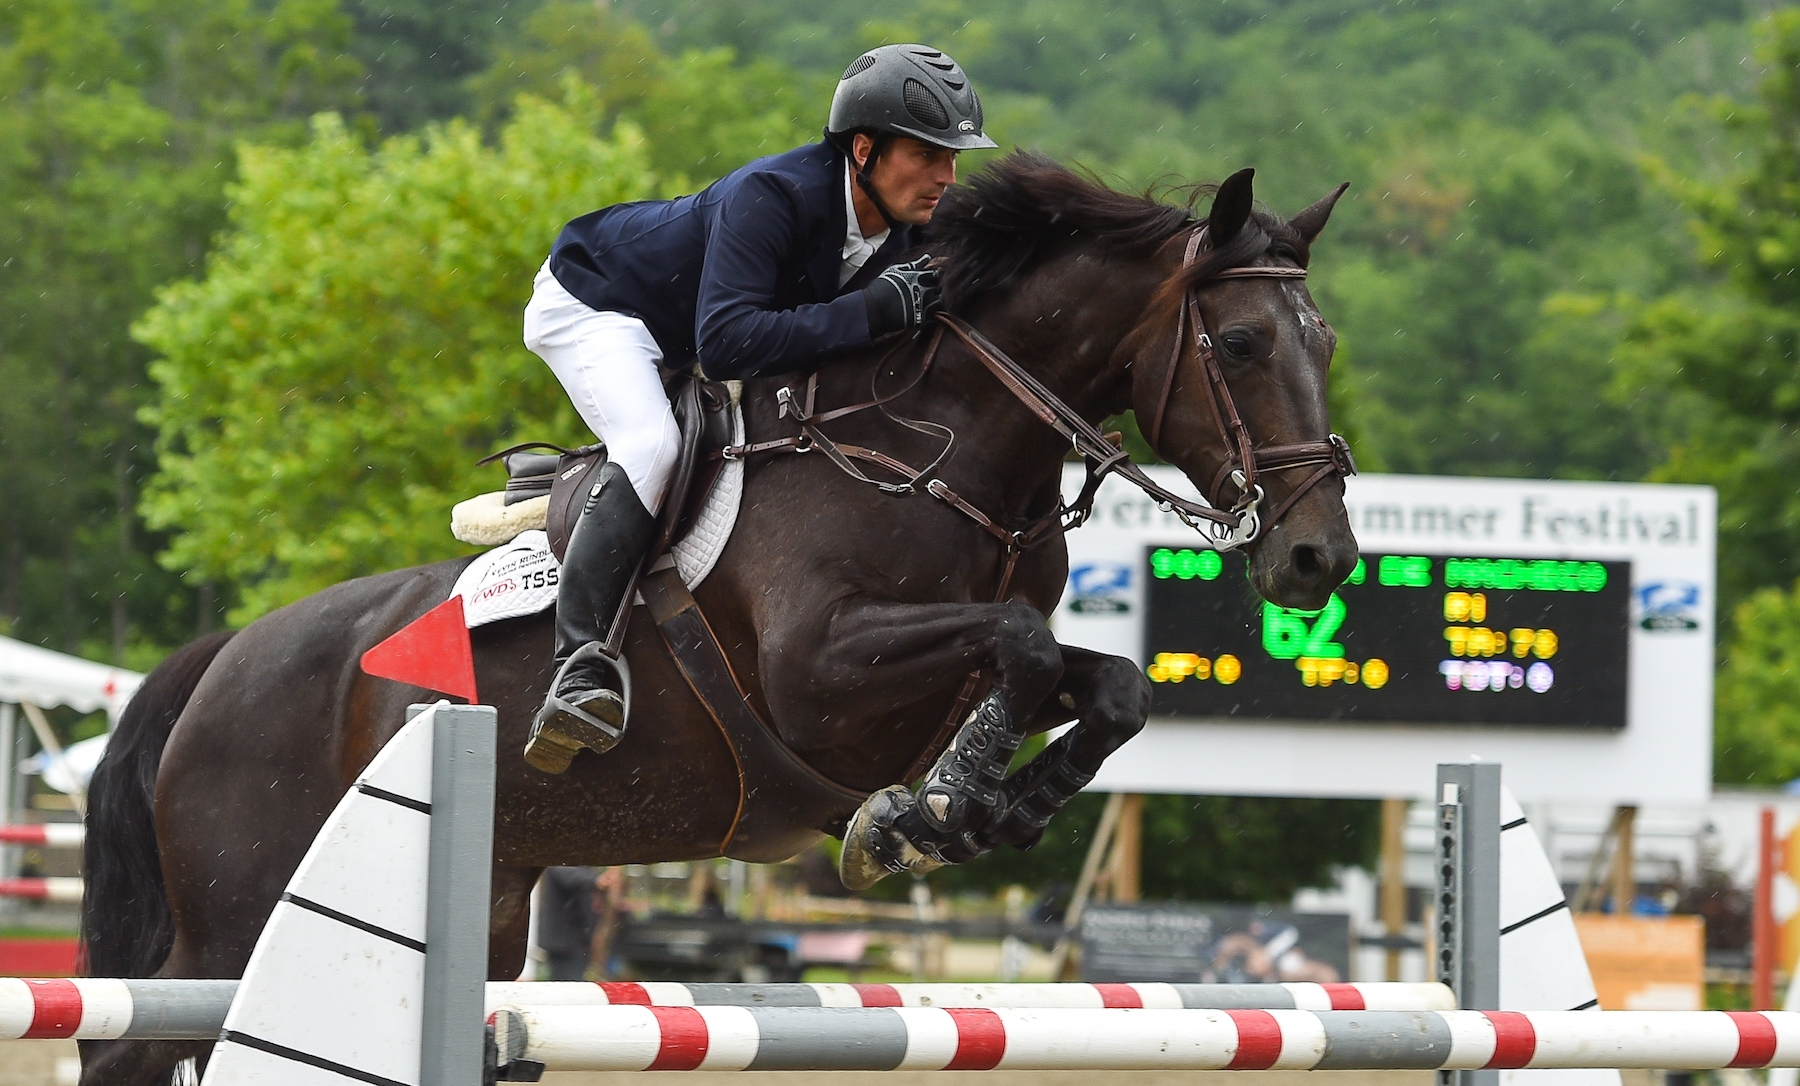 Sam Pegg of Uxbridge, ON, riding Shaia de Macheco to a victory in the $10,000 New Balance Welcome Stake, presented by Manchester Designer Outlets, while competing at the 2017 Vermont Summer Festival in East Dorset, VT.<br><b>Photo by <a href='http://www.andrewryback.com/' target='_blank'>Andrew Ryback Photography</a></b>